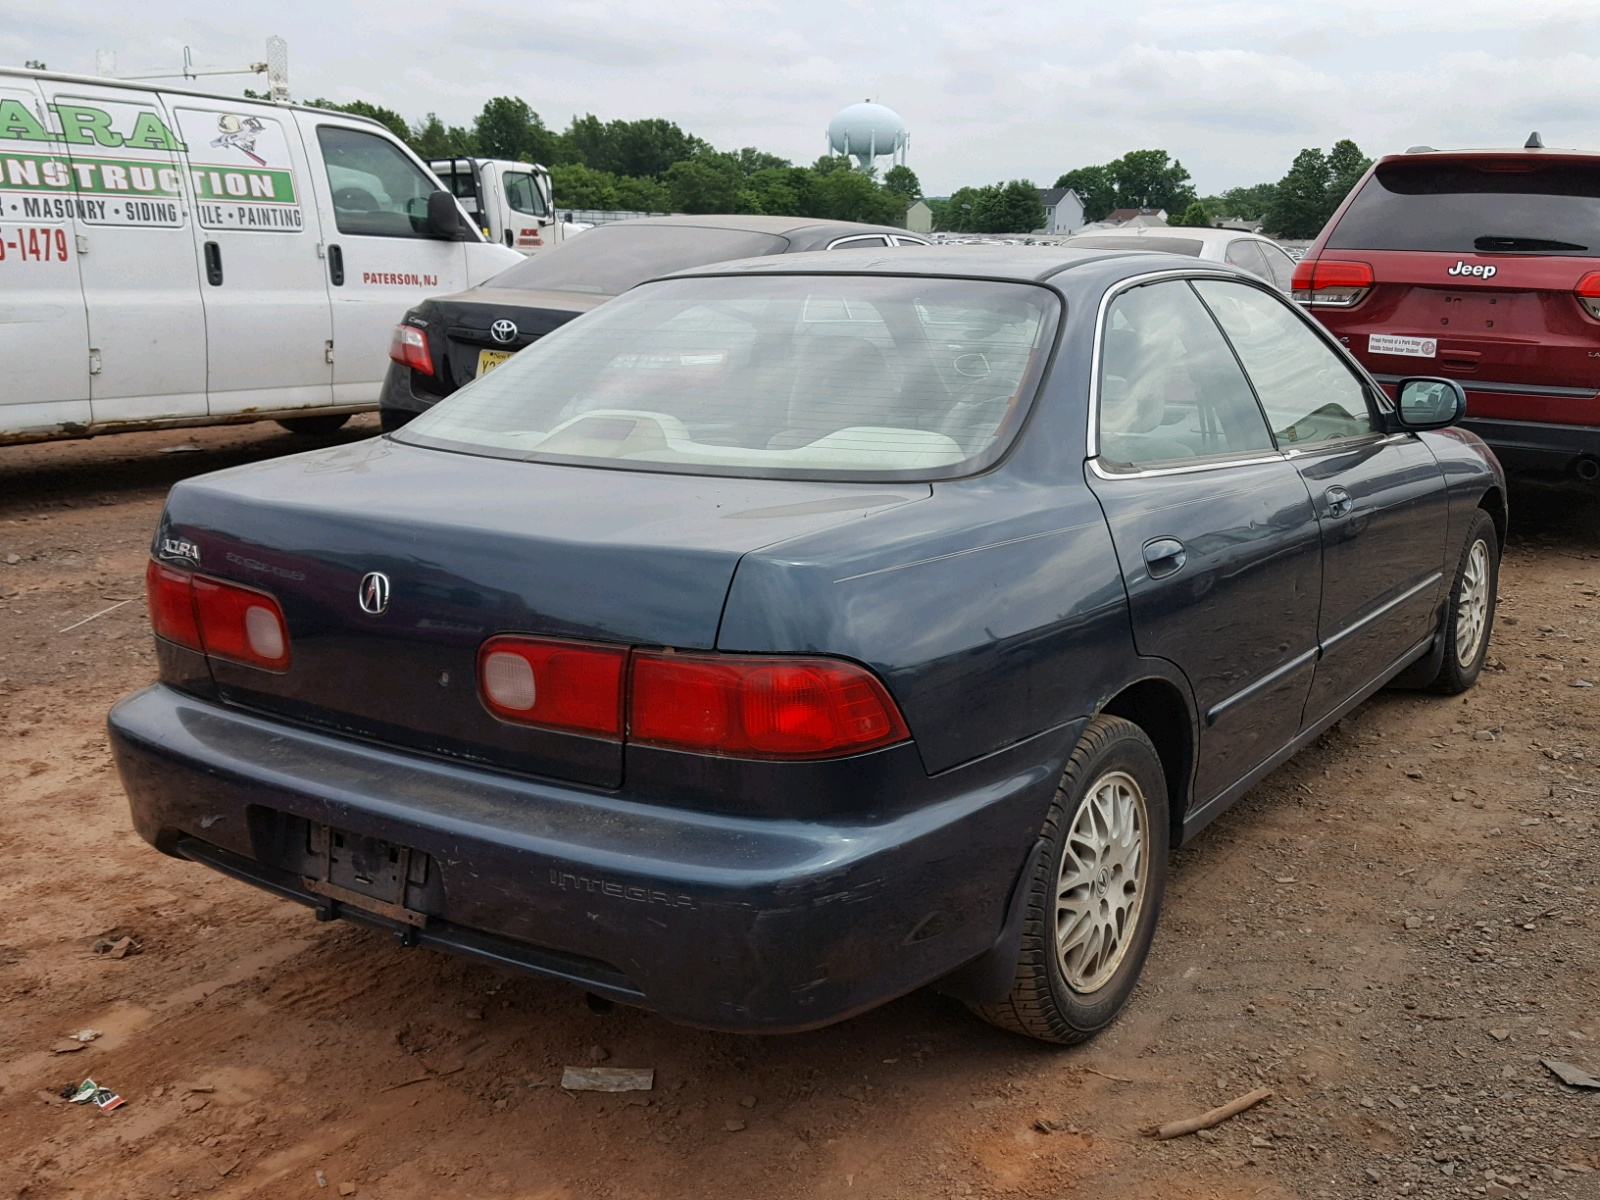 Acura Integra LS For Sale At Copart Hillsborough NJ Lot - Acura integra for sale in nj